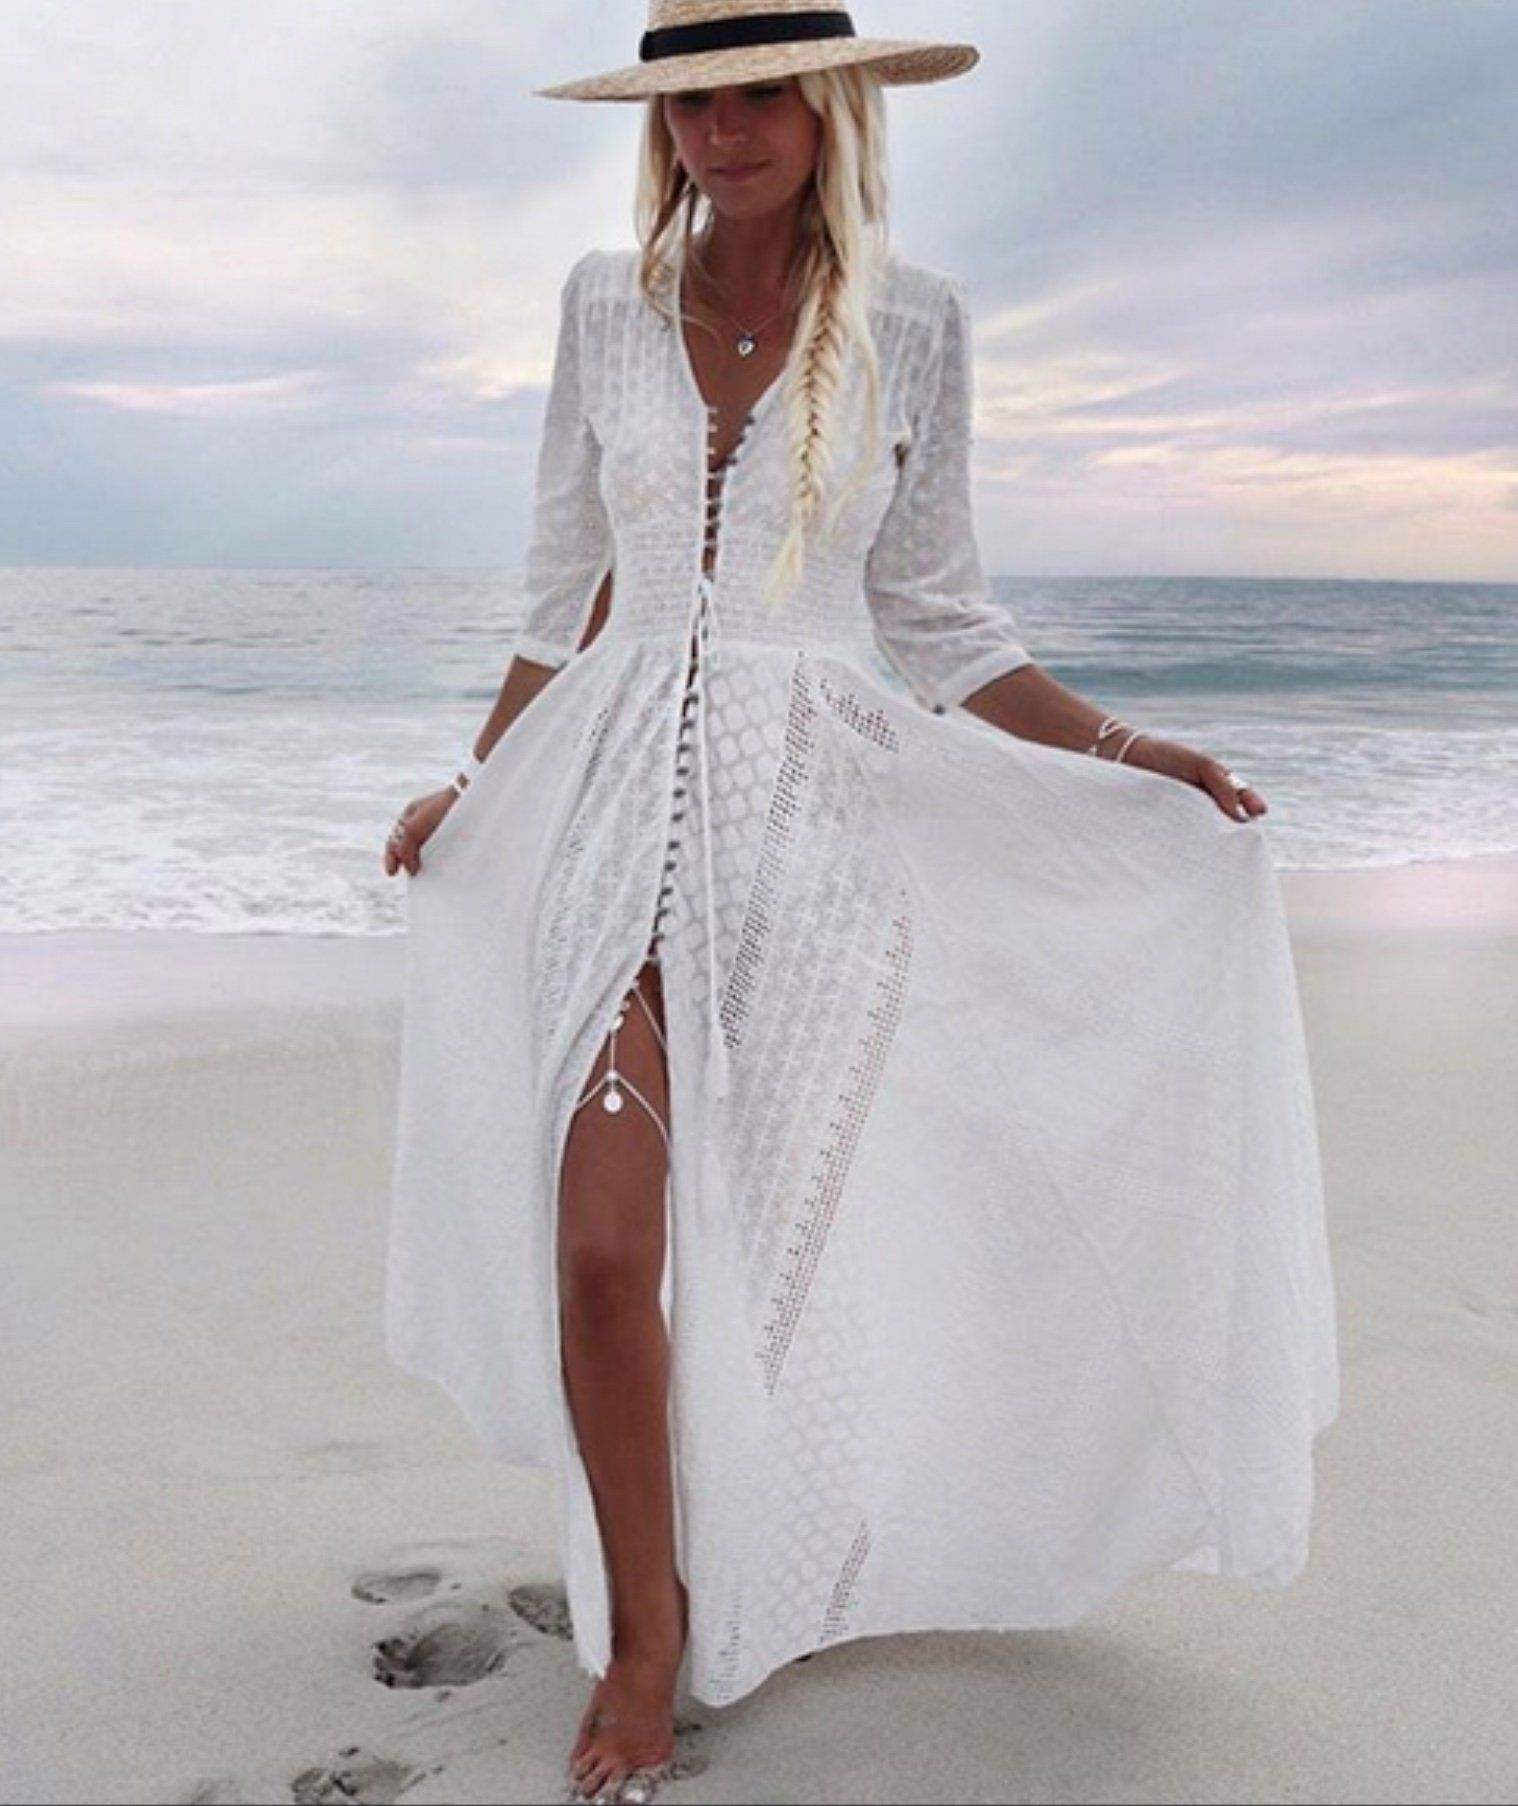 717e1cccccf The perfect white dress is the jaase Embroider anglaise Indiana maxi dress-  perfect summer Christmas dress